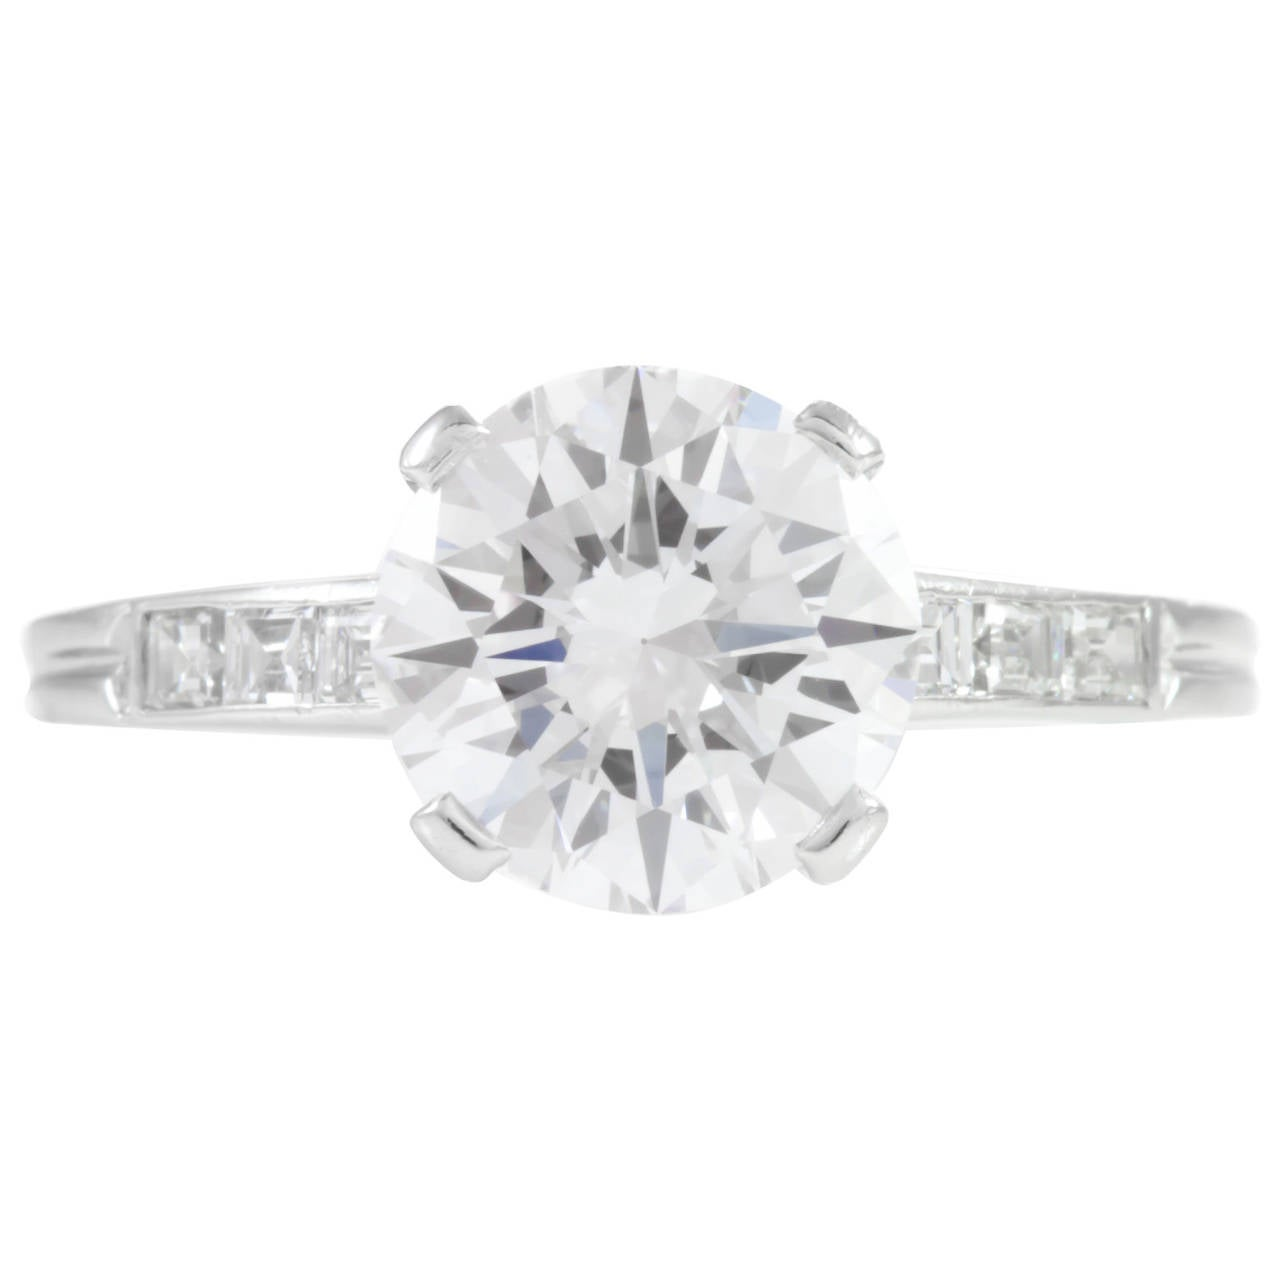 1960 s 2 Carat Tiffany and Co Diamond Engagement Ring at 1stdibs